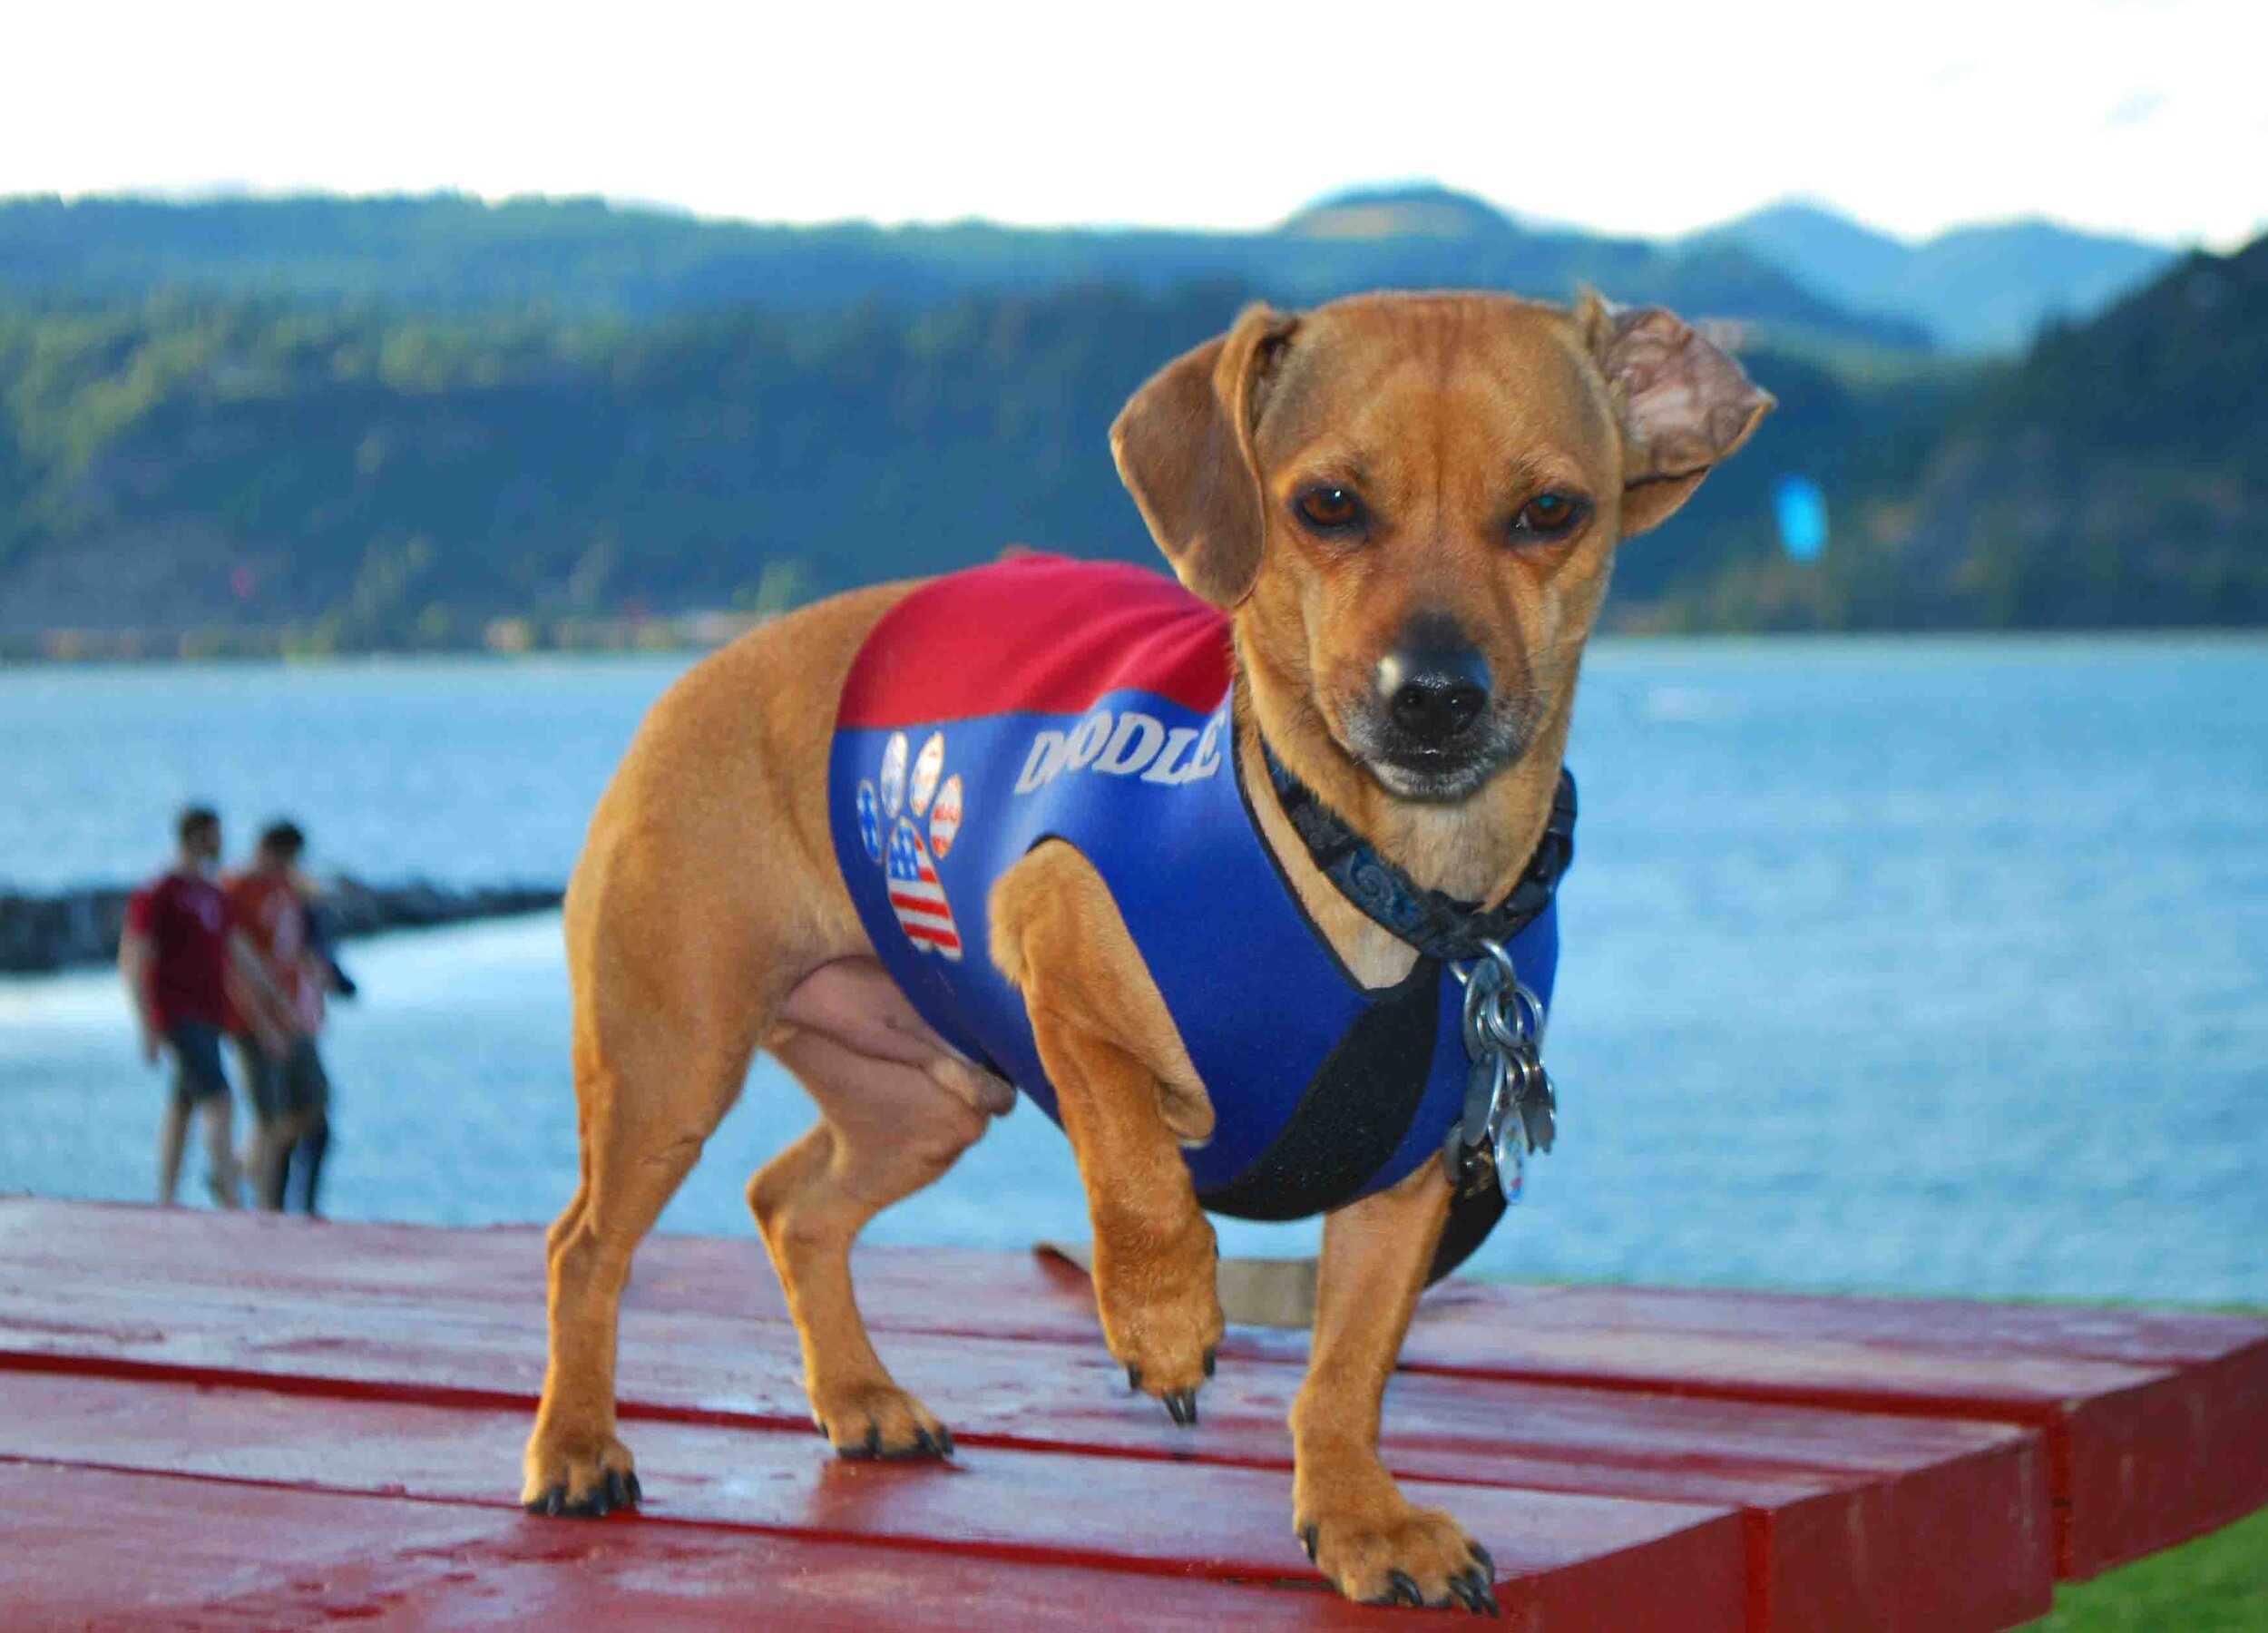 Doodle over the Hood River waterfront. Photo: (c) Barb Ayers, DogDiary.org